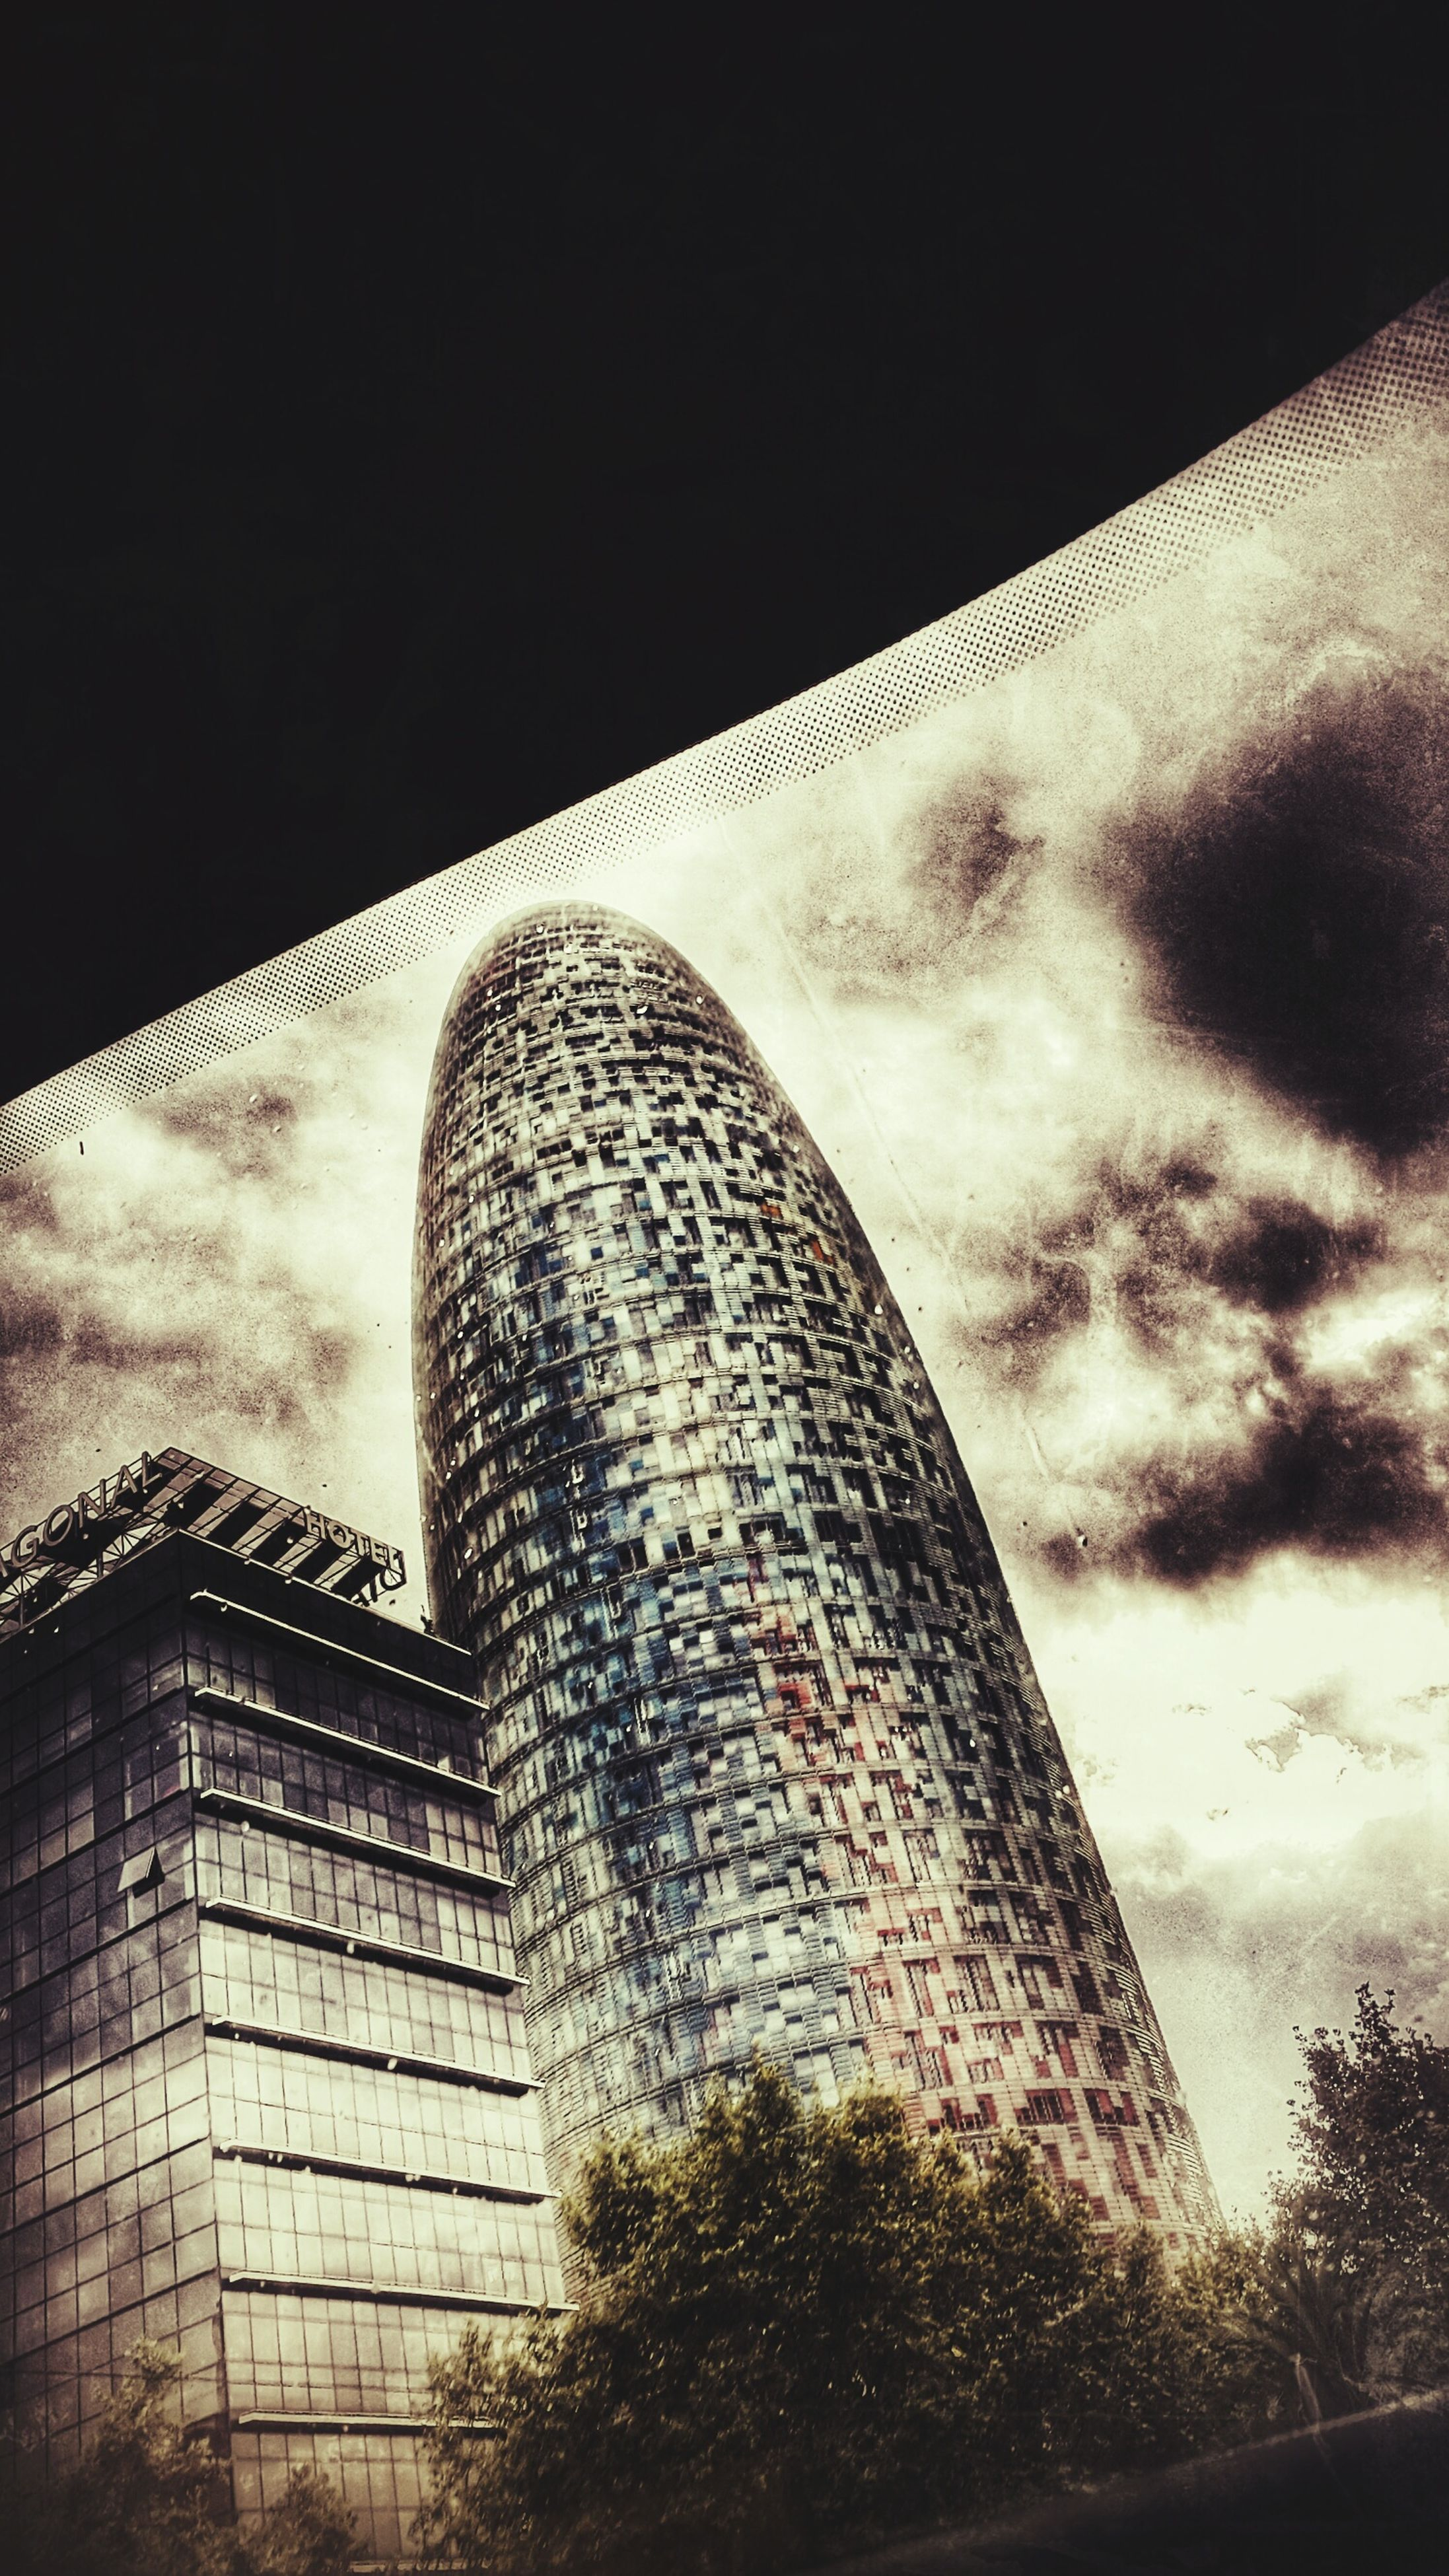 architecture, built structure, building exterior, low angle view, sky, modern, city, building, tall - high, office building, no people, outdoors, skyscraper, tower, glass - material, day, cloud - sky, window, reflection, sunlight